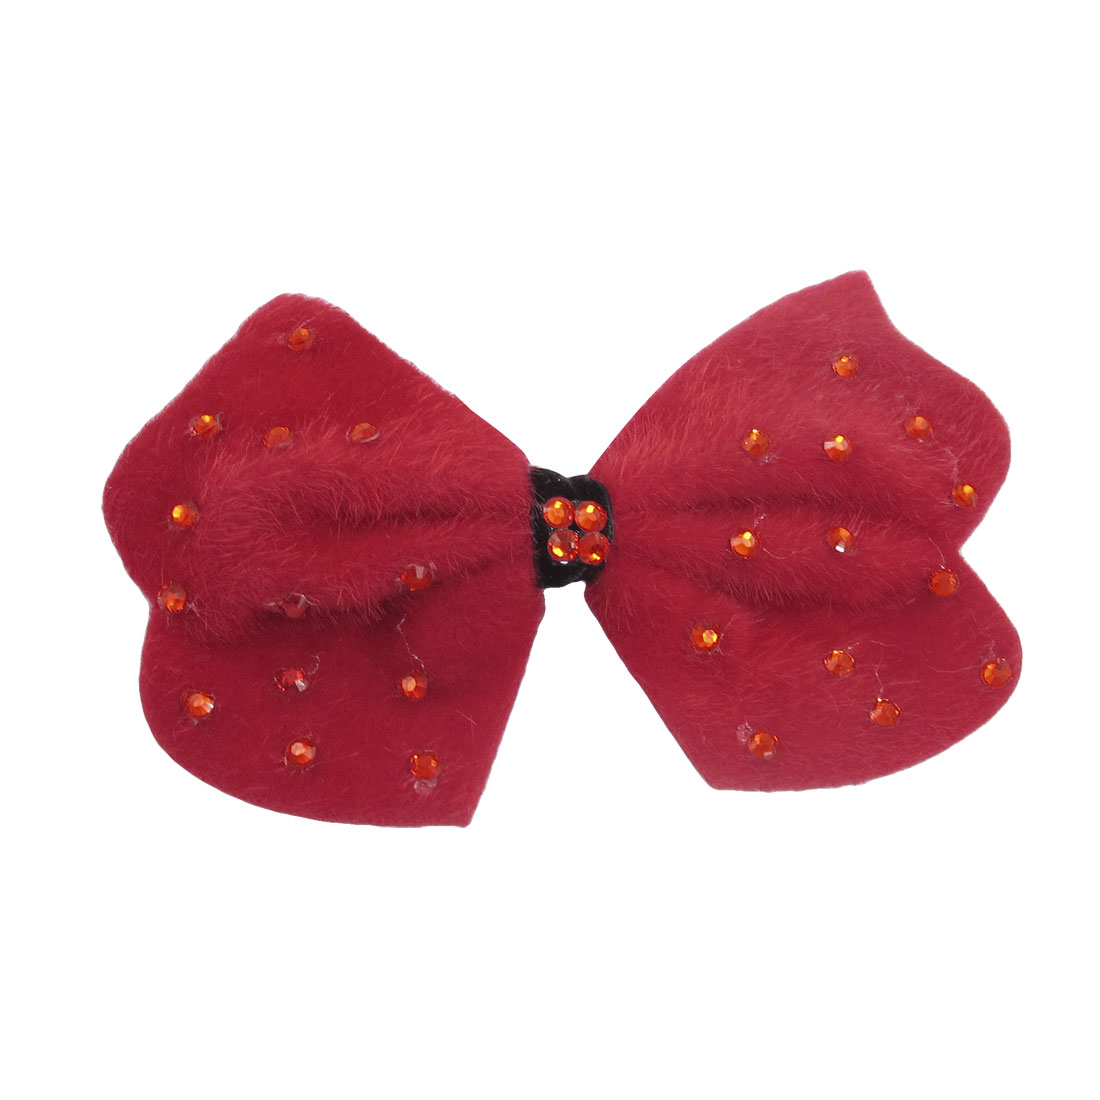 Red Felt Bowtie Shape Plastic Beads Decor Alligator Hair Clip